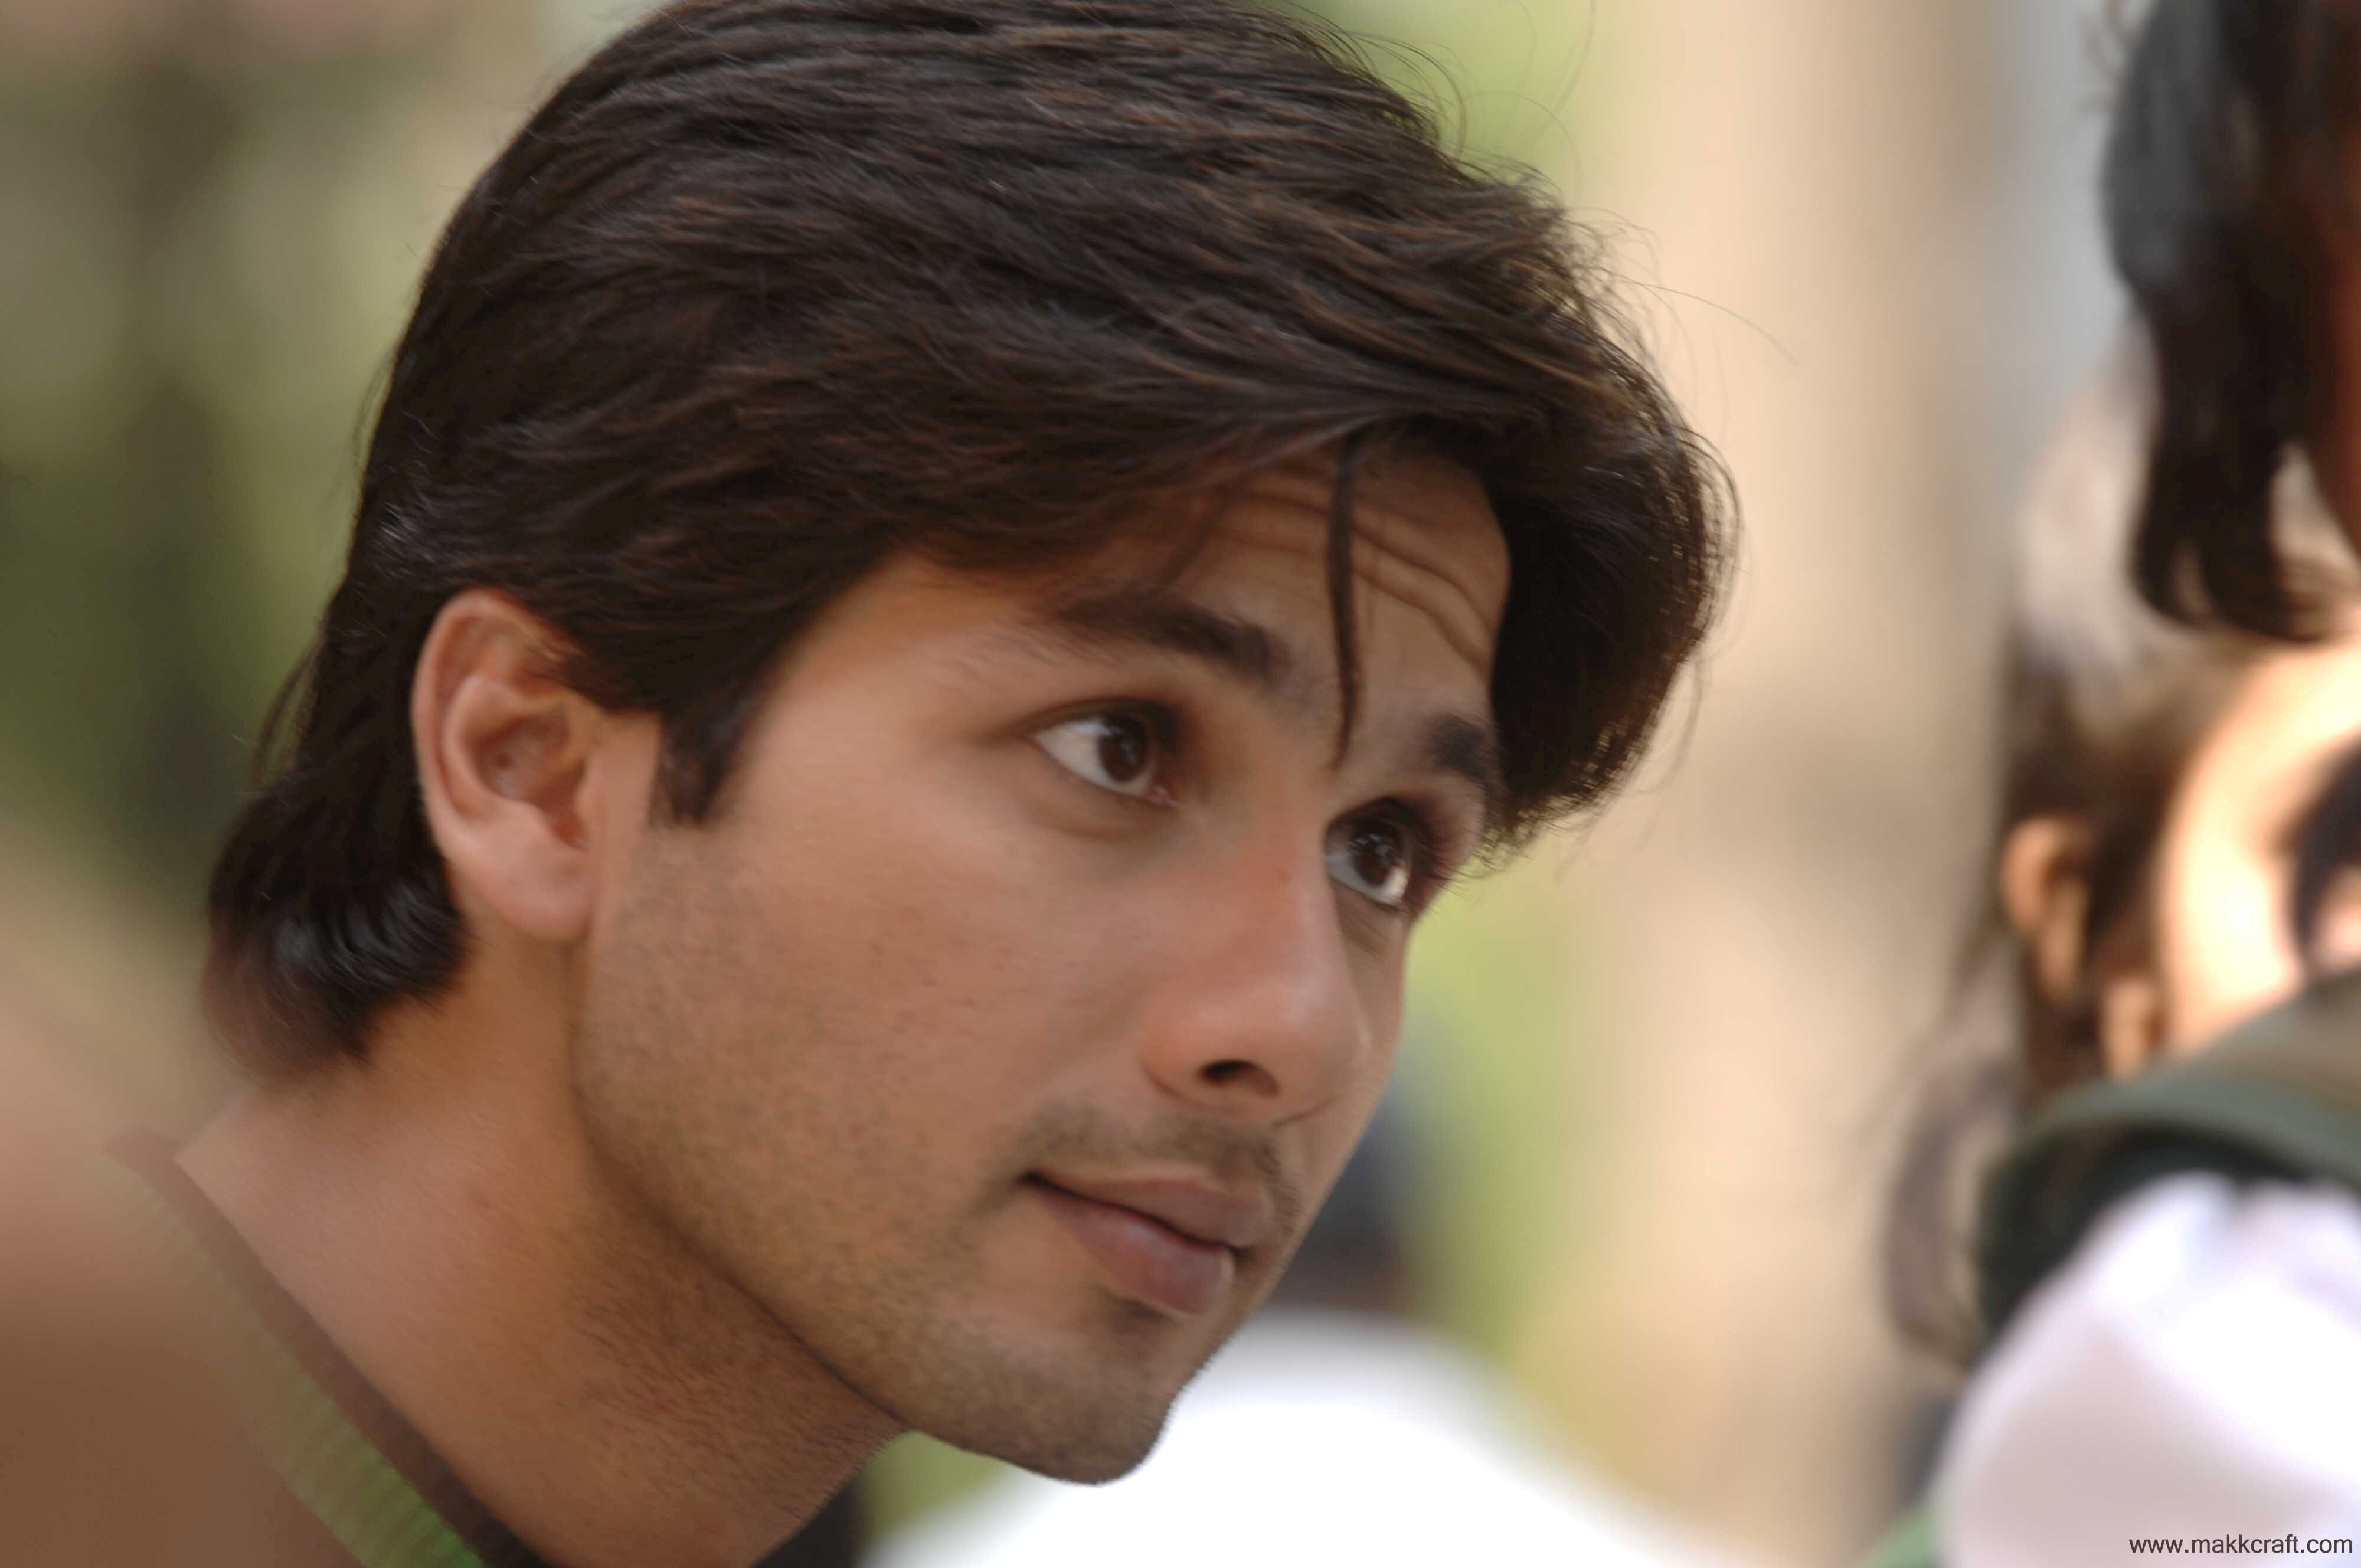 serious shahid kapoor pics | hd wallpapers